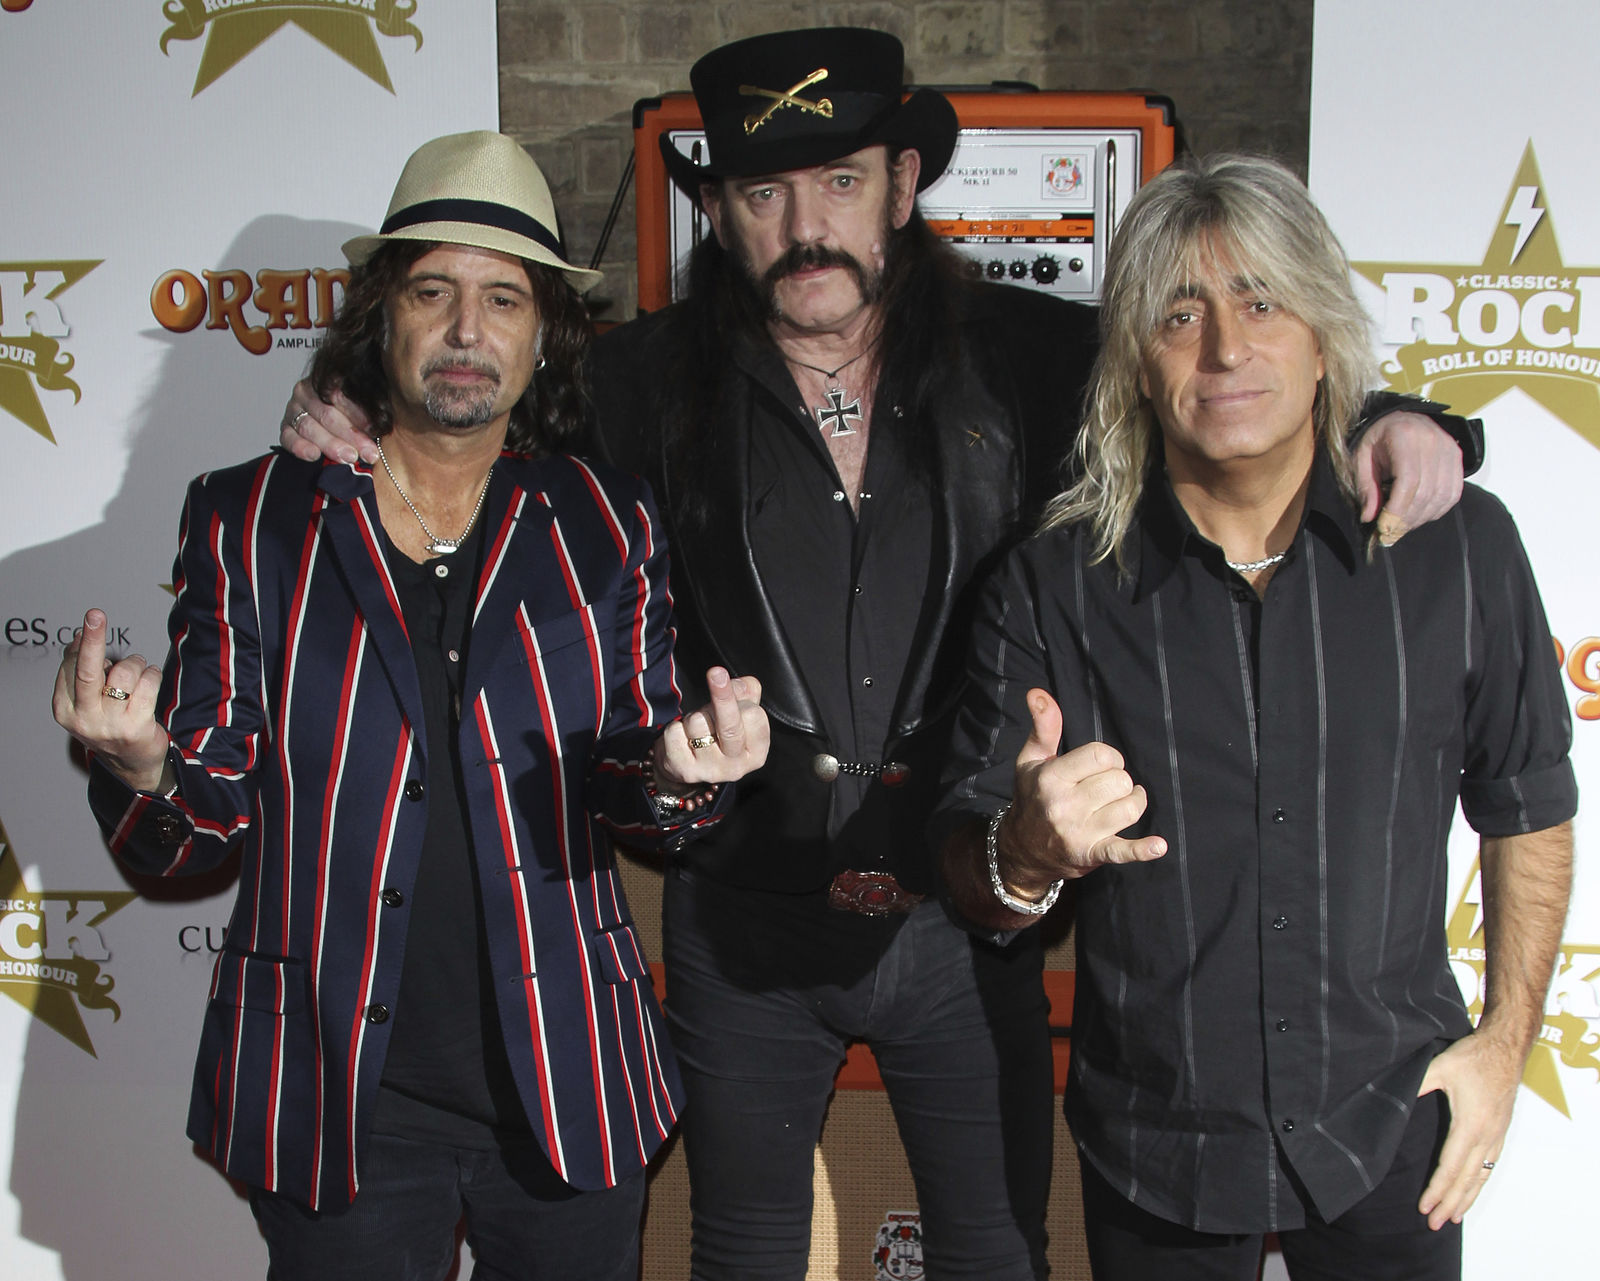 FILE - This Nov. 13, 2012 file photo shows, from left, Phil Campbell, Lemmy Kilmister, and Mikkey Dee, of Motorhead, at the Classic Rock Roll of Honour Awards at the Roundhouse venue in Camden, north London.  Motorhead are among the 16 acts nominated for the Rock and Roll Hall of Fame's 2020 class. Kilmister died on on Dec. 28, 2015. (Photo by Joel Ryan/Invision/AP, File)